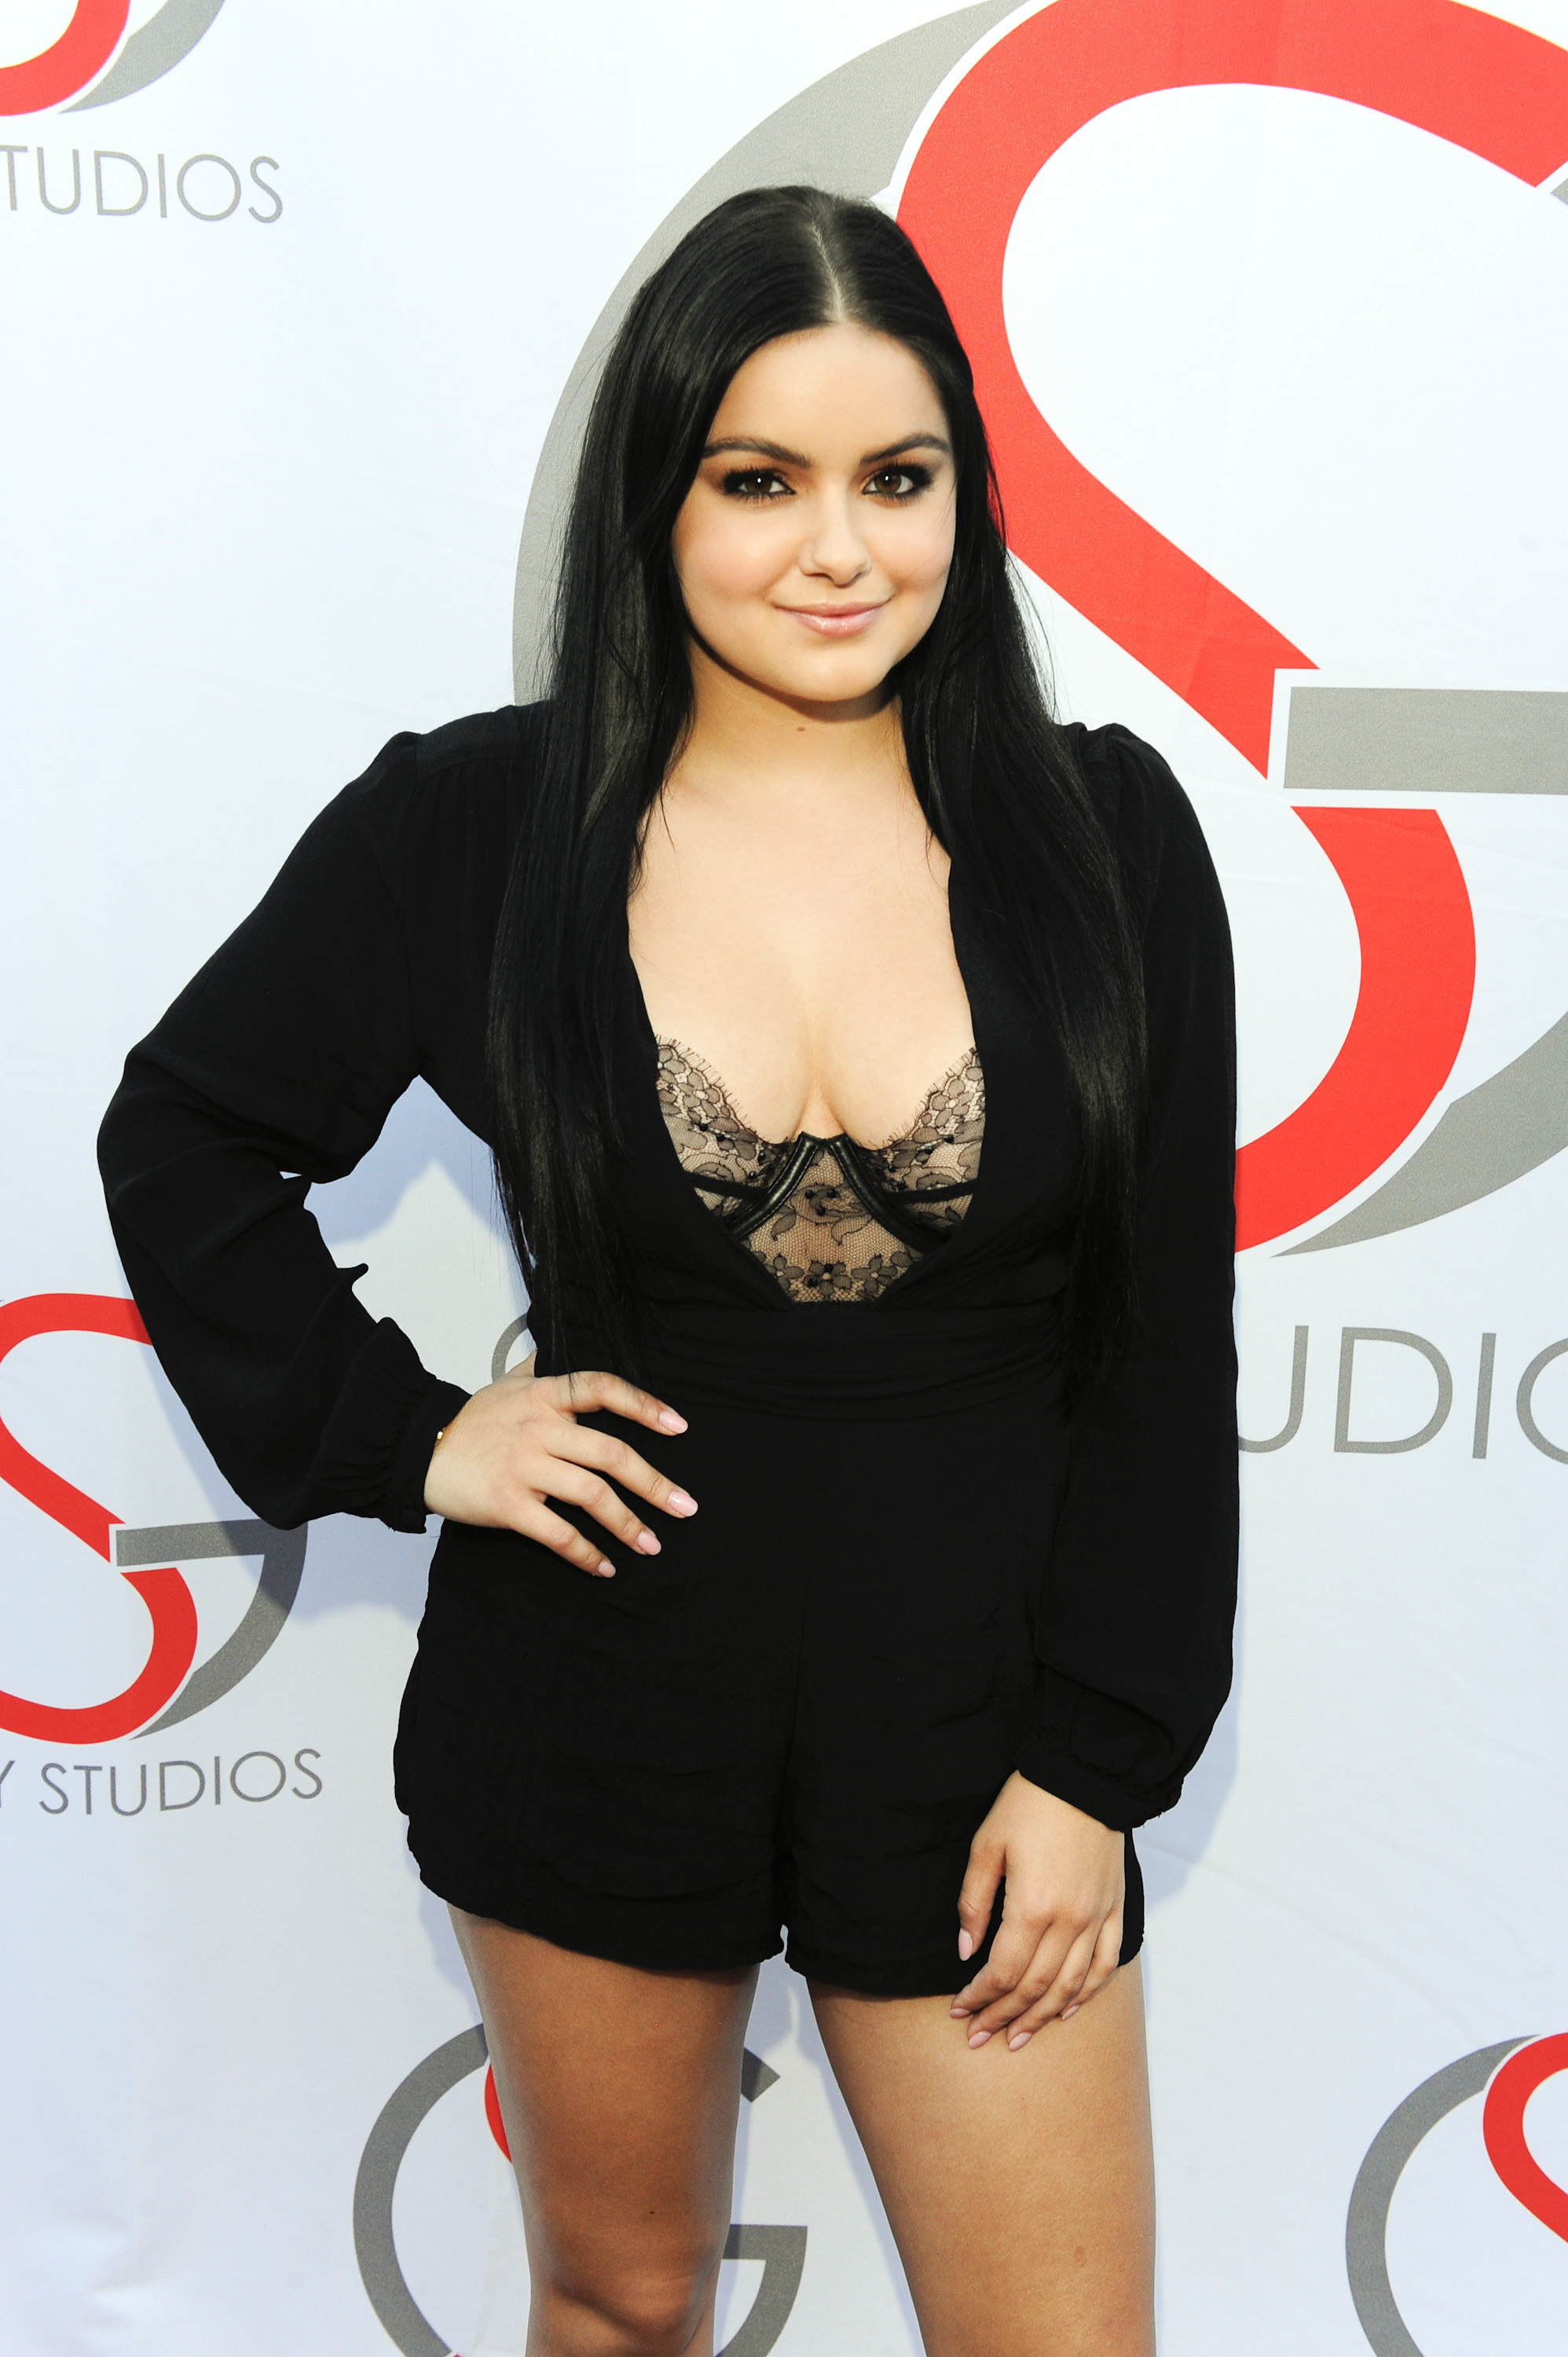 5a68acb34b Ariel Winter's latest exposed bra look is empowering AF - HelloGiggles